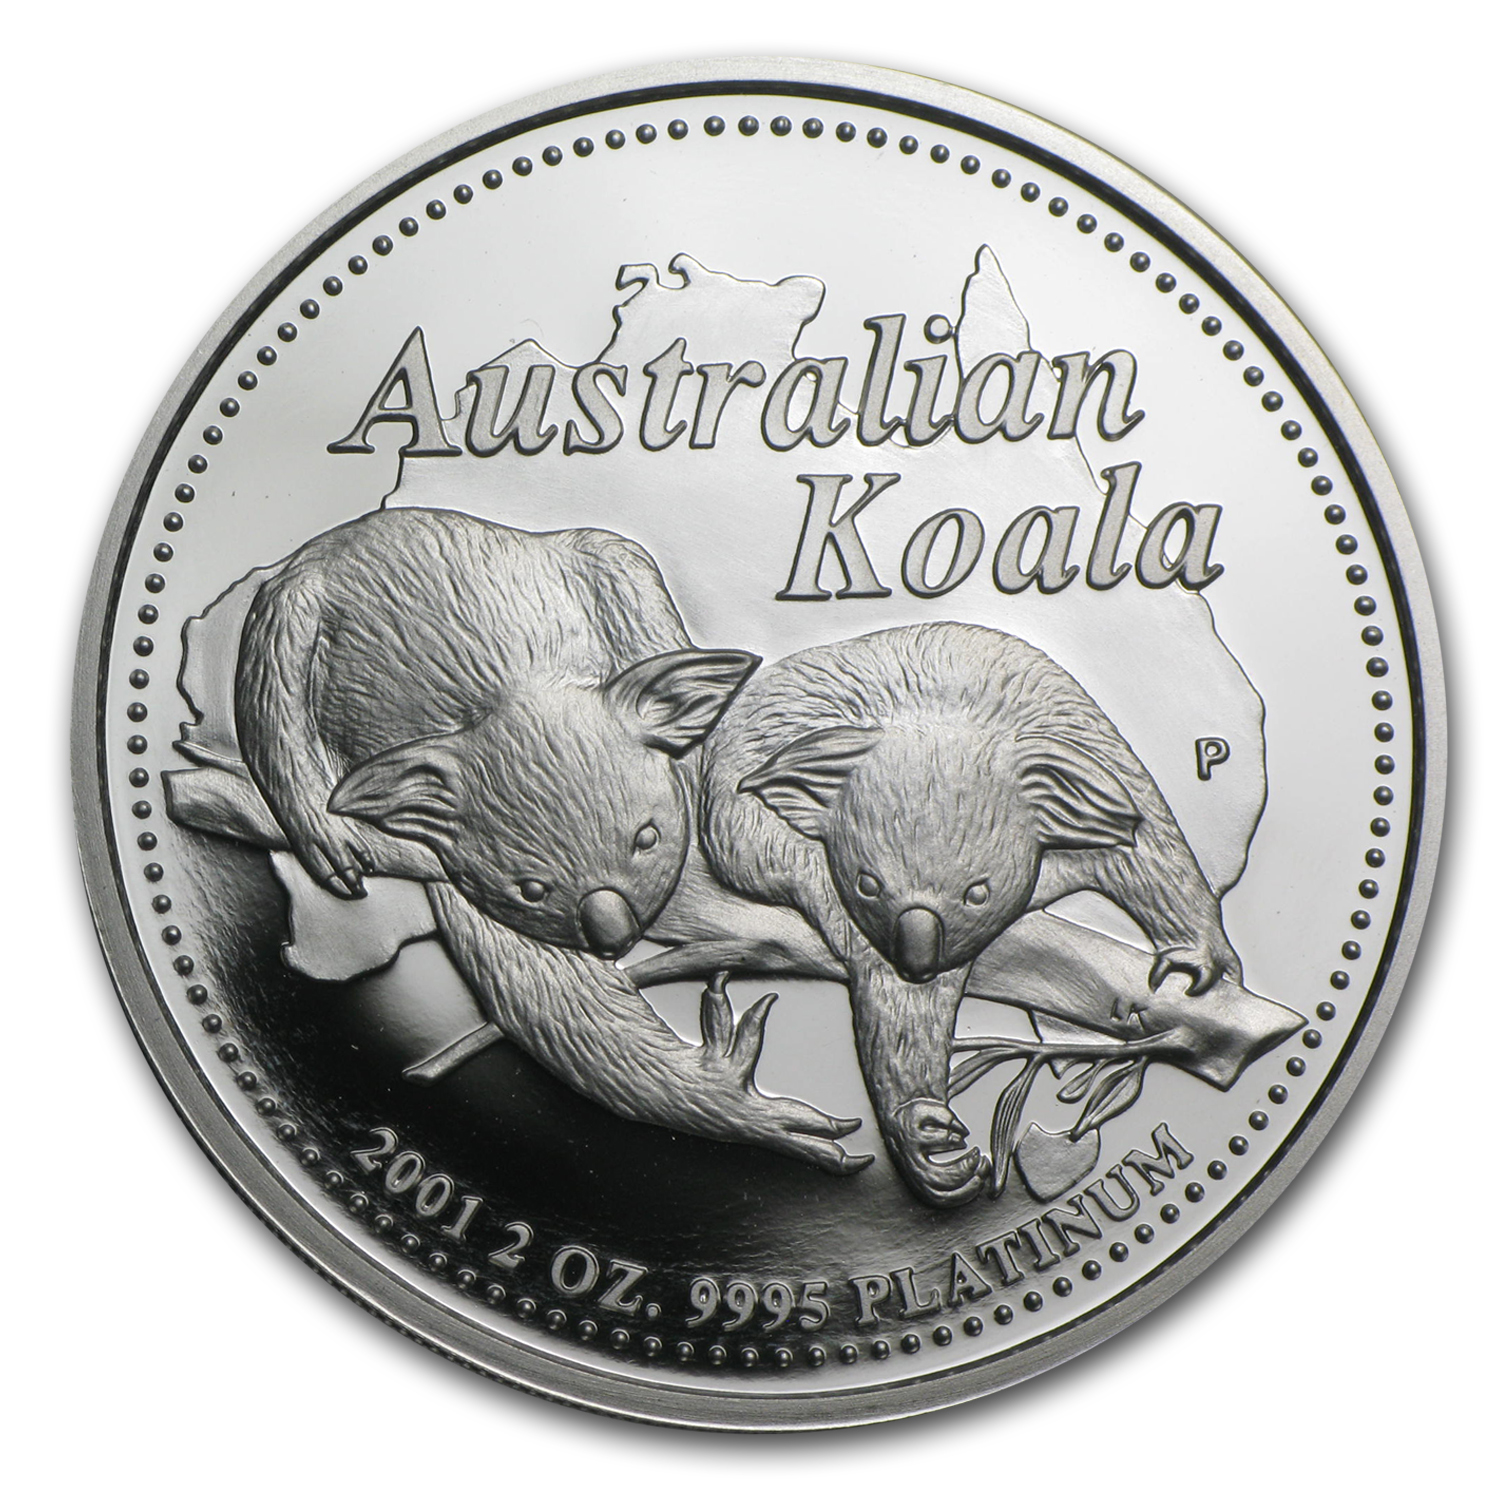 2001 Australia 2 oz Proof Platinum Koala